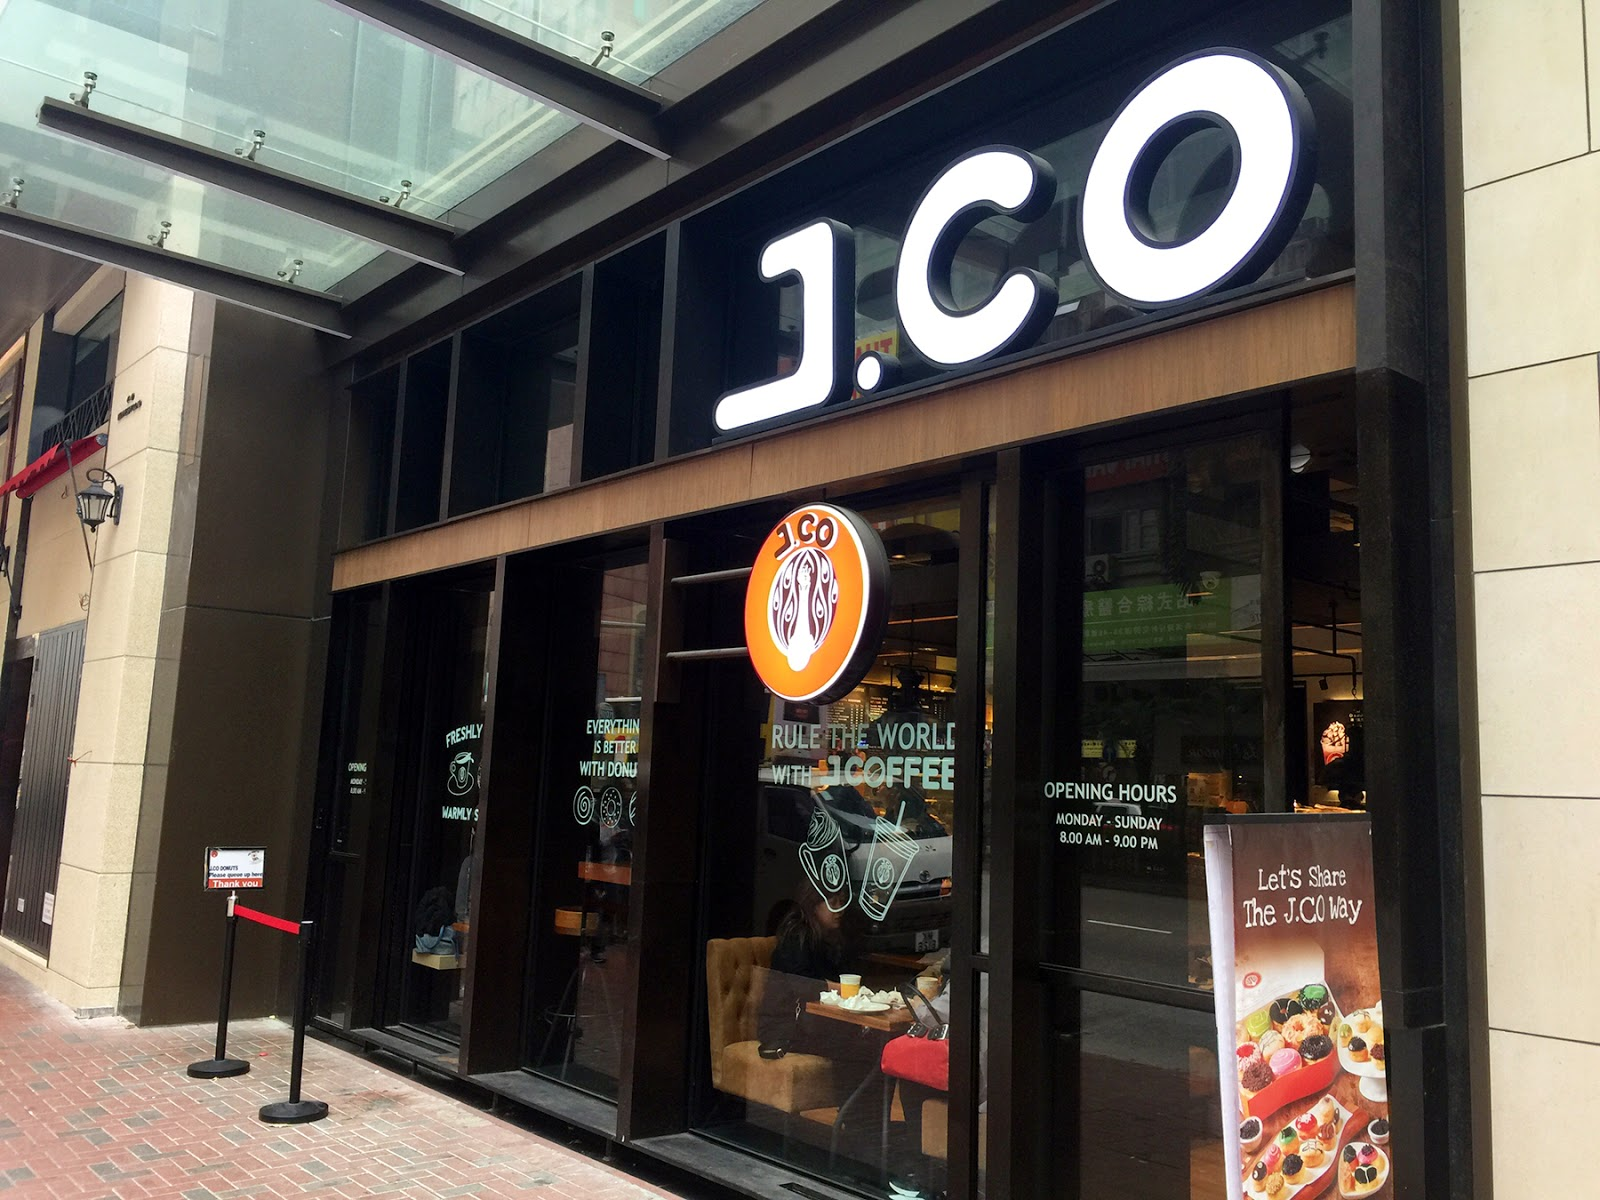 J.Co Donuts & Coffee (Hong Kong, CHINA) ★★★☆☆   A traveling foodie's gastronomic diary from around the world...